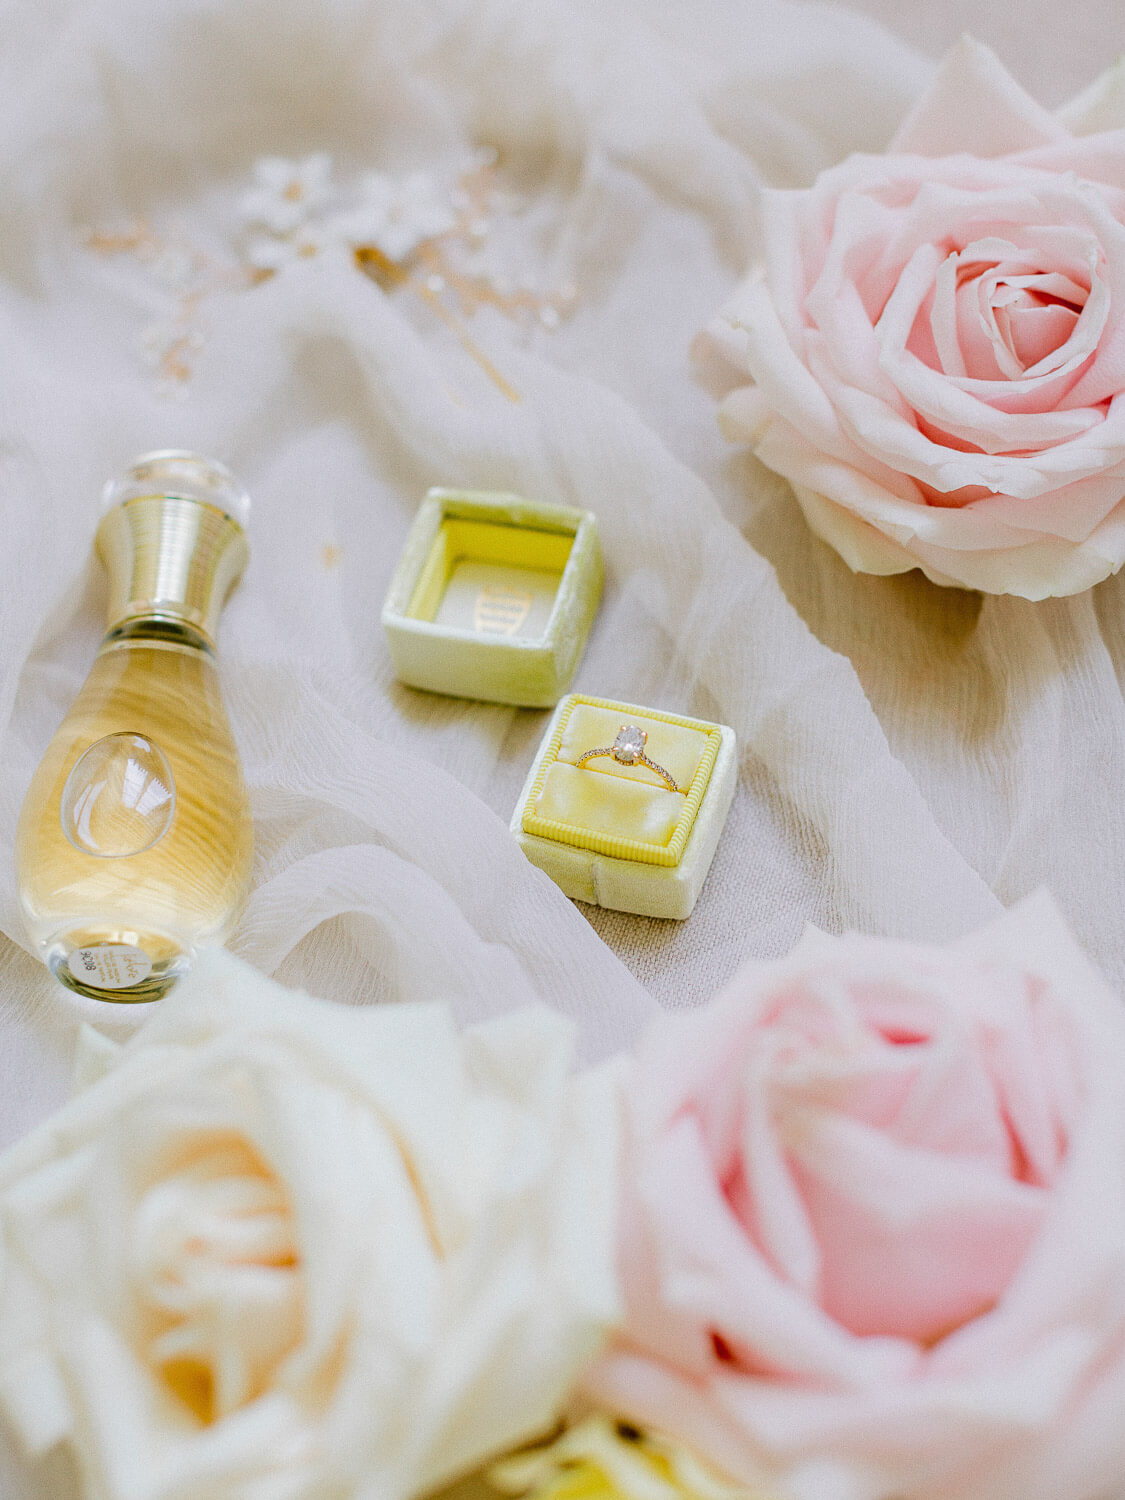 wedding flat with a rose, diamond ring on yellow velvet ring box, perfume and silk by Portugal Wedding Photographer